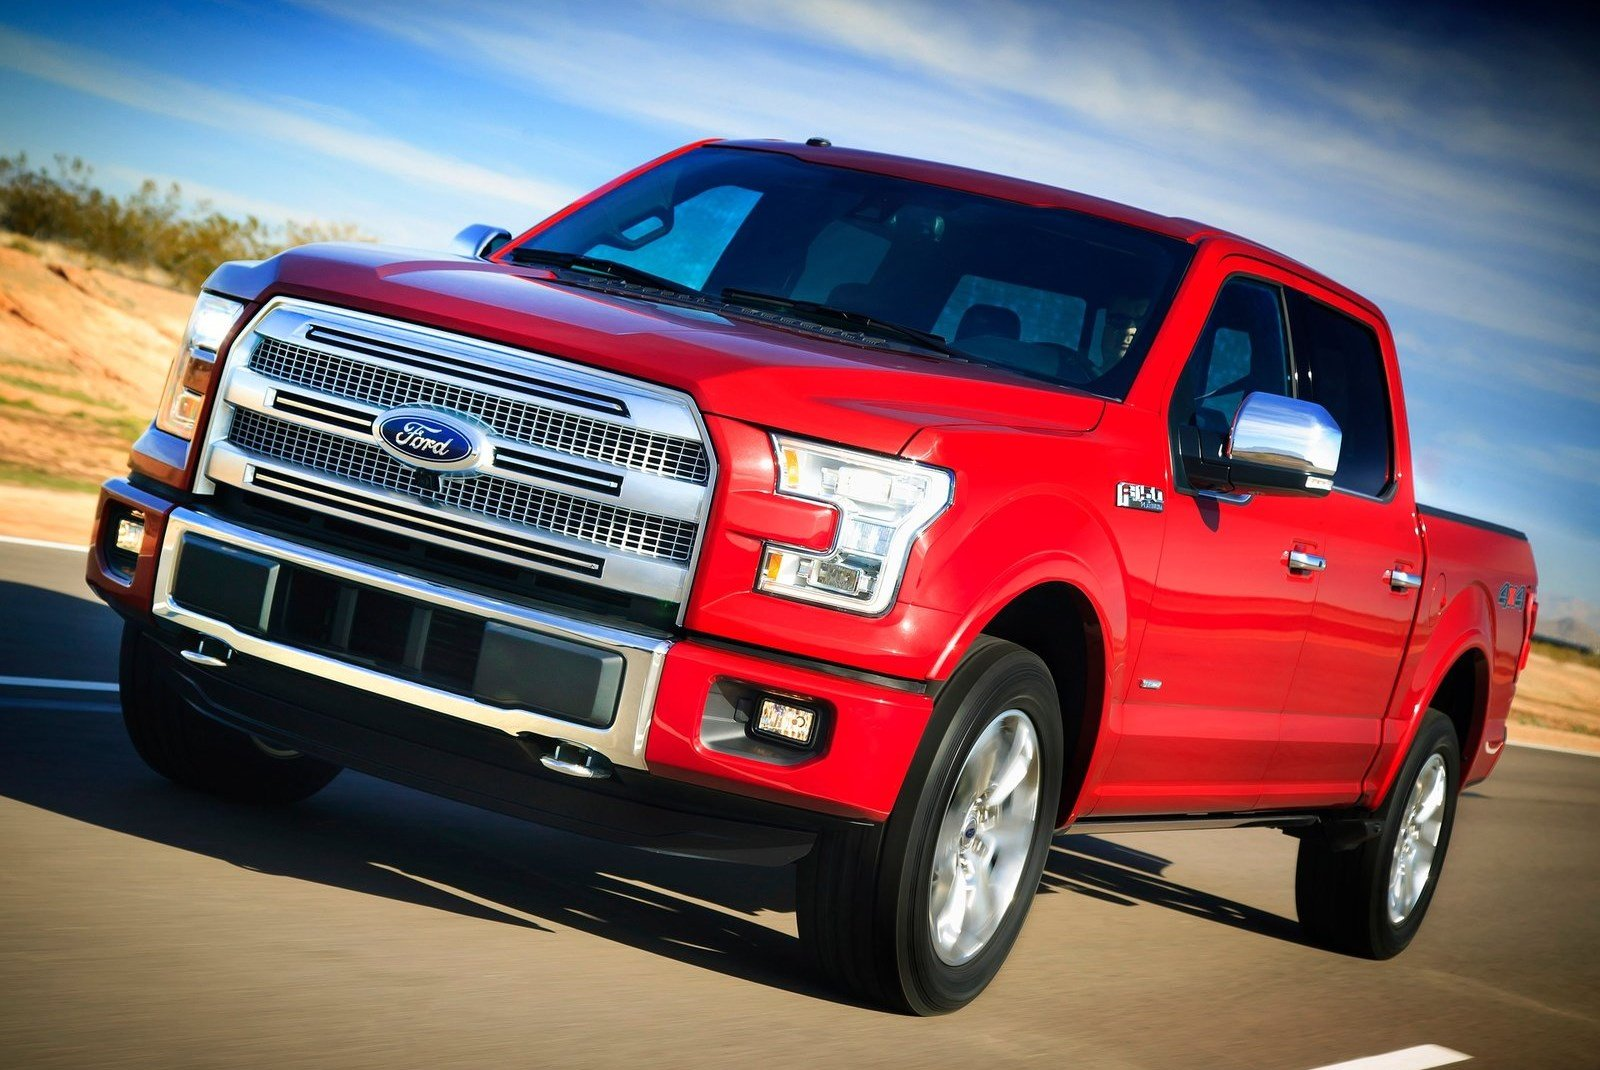 New Ford F150 Wallpapers F150 Ford 2015 2015 Ford f 150 4 1600x1070